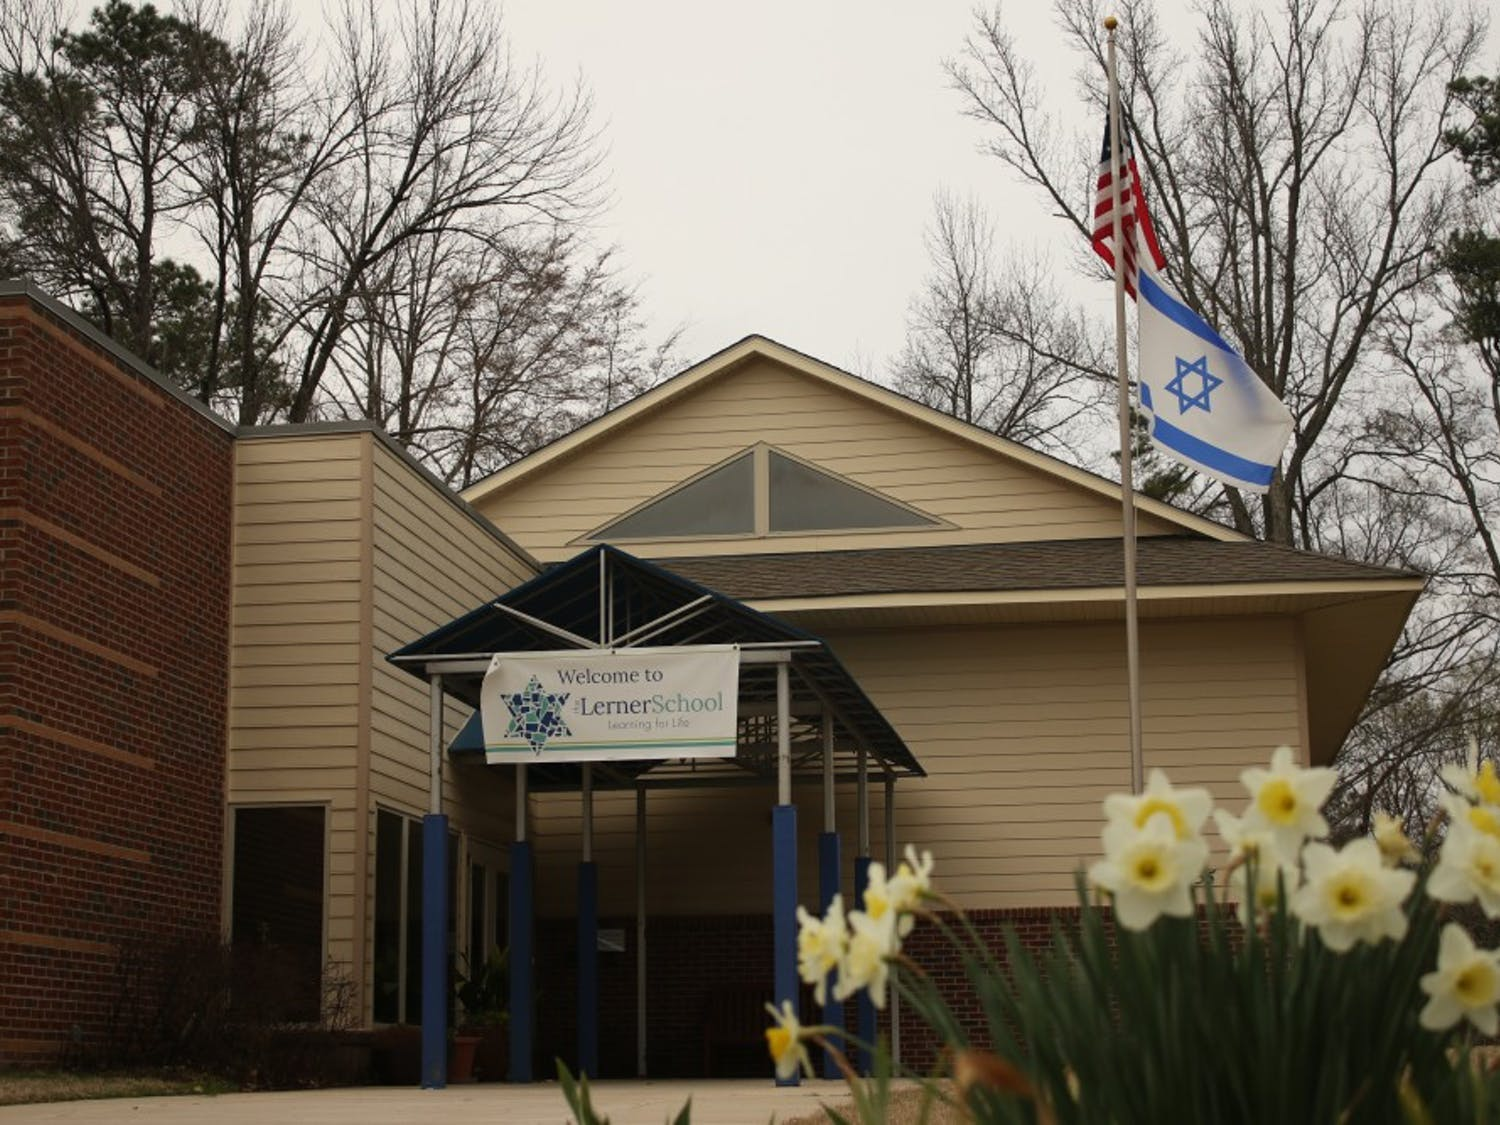 On Wednesday, The Lerner Jewish Community Day School received an anti-semitic bomb threat.